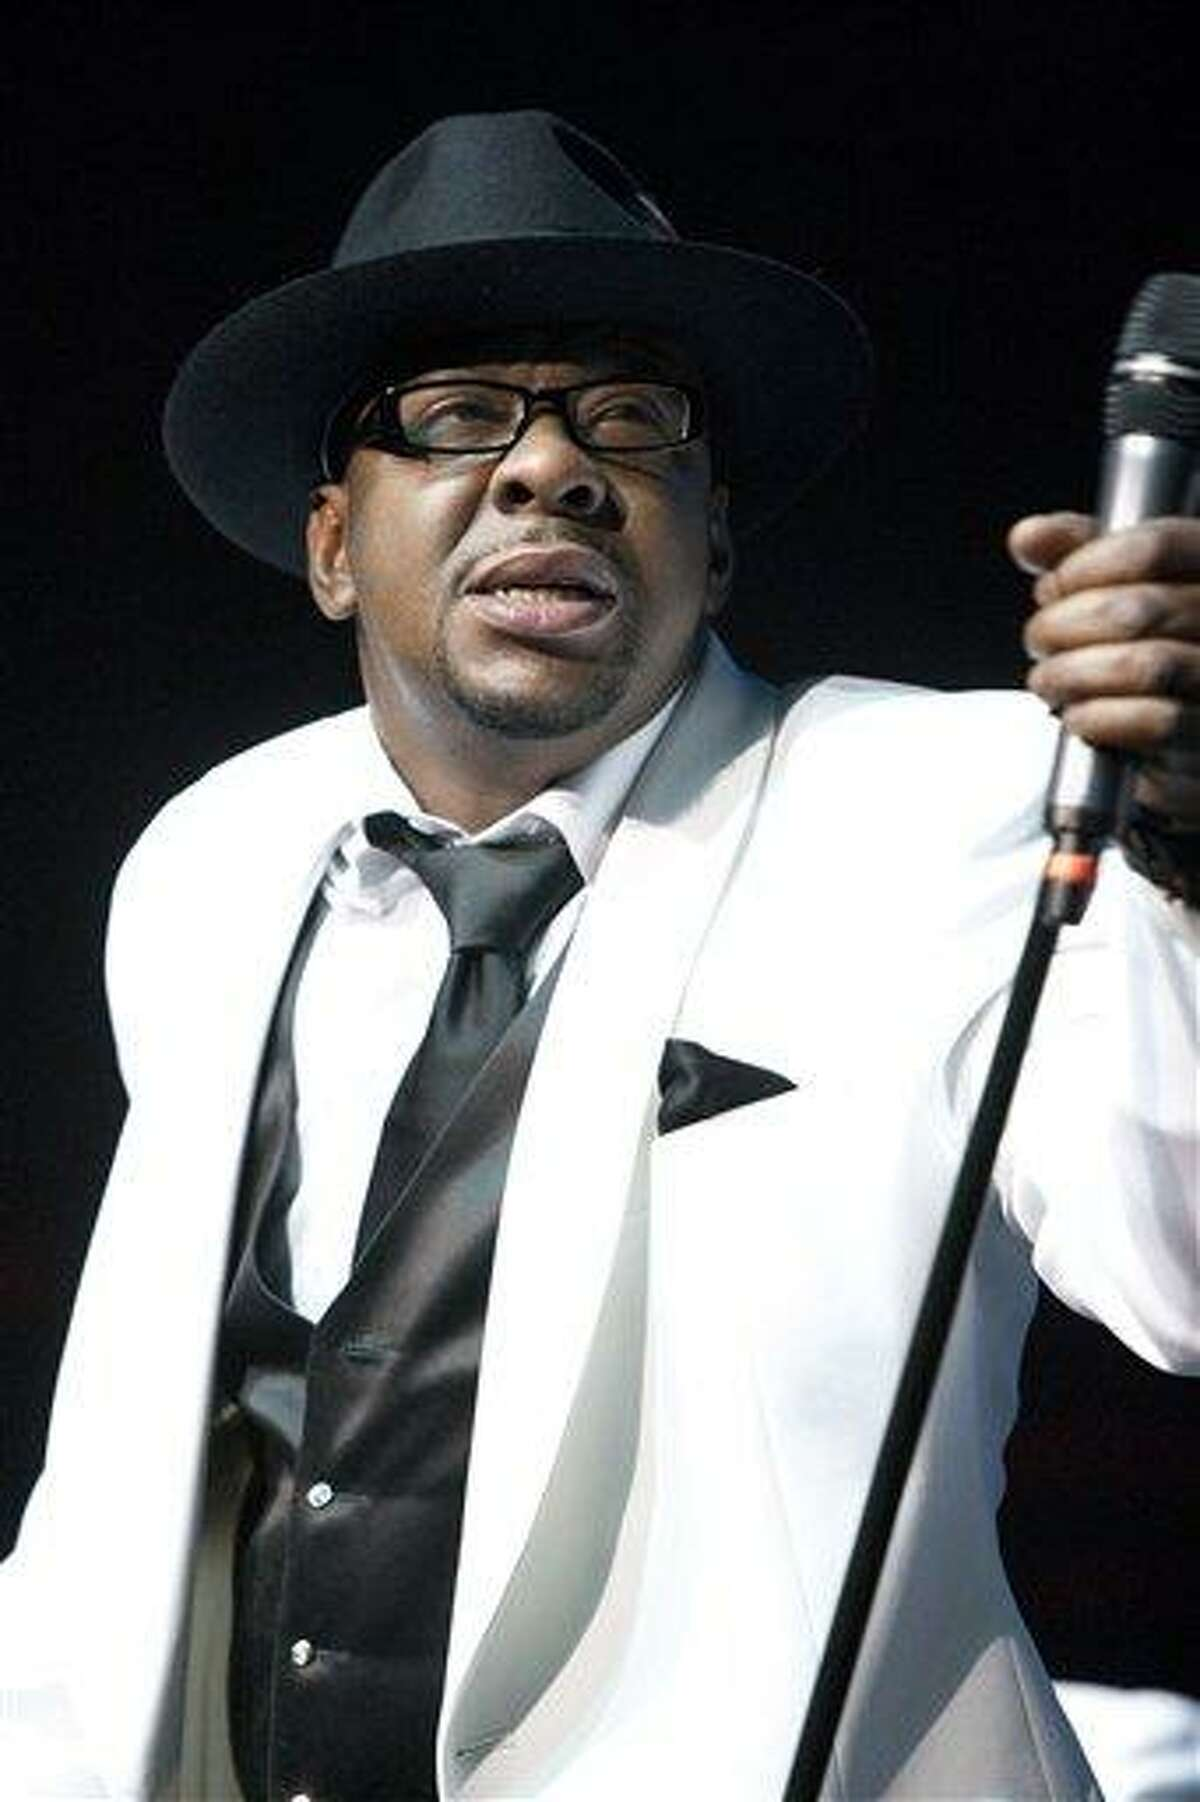 FILE - In this Feb. 18, 2012 file photo, singer Bobby Brown, former husband of the late Whitney Houston performs with New Edition at Mohegan Sun Casino in Uncasville, Conn. A judge sentenced Brown to 55 days in a Los Angelesjail Tuesday Feb. 26, 2013 after the singer pleaded no contest to a drunken driving charge and driving on a suspended license. (AP Photo/Joe Giblin, file)